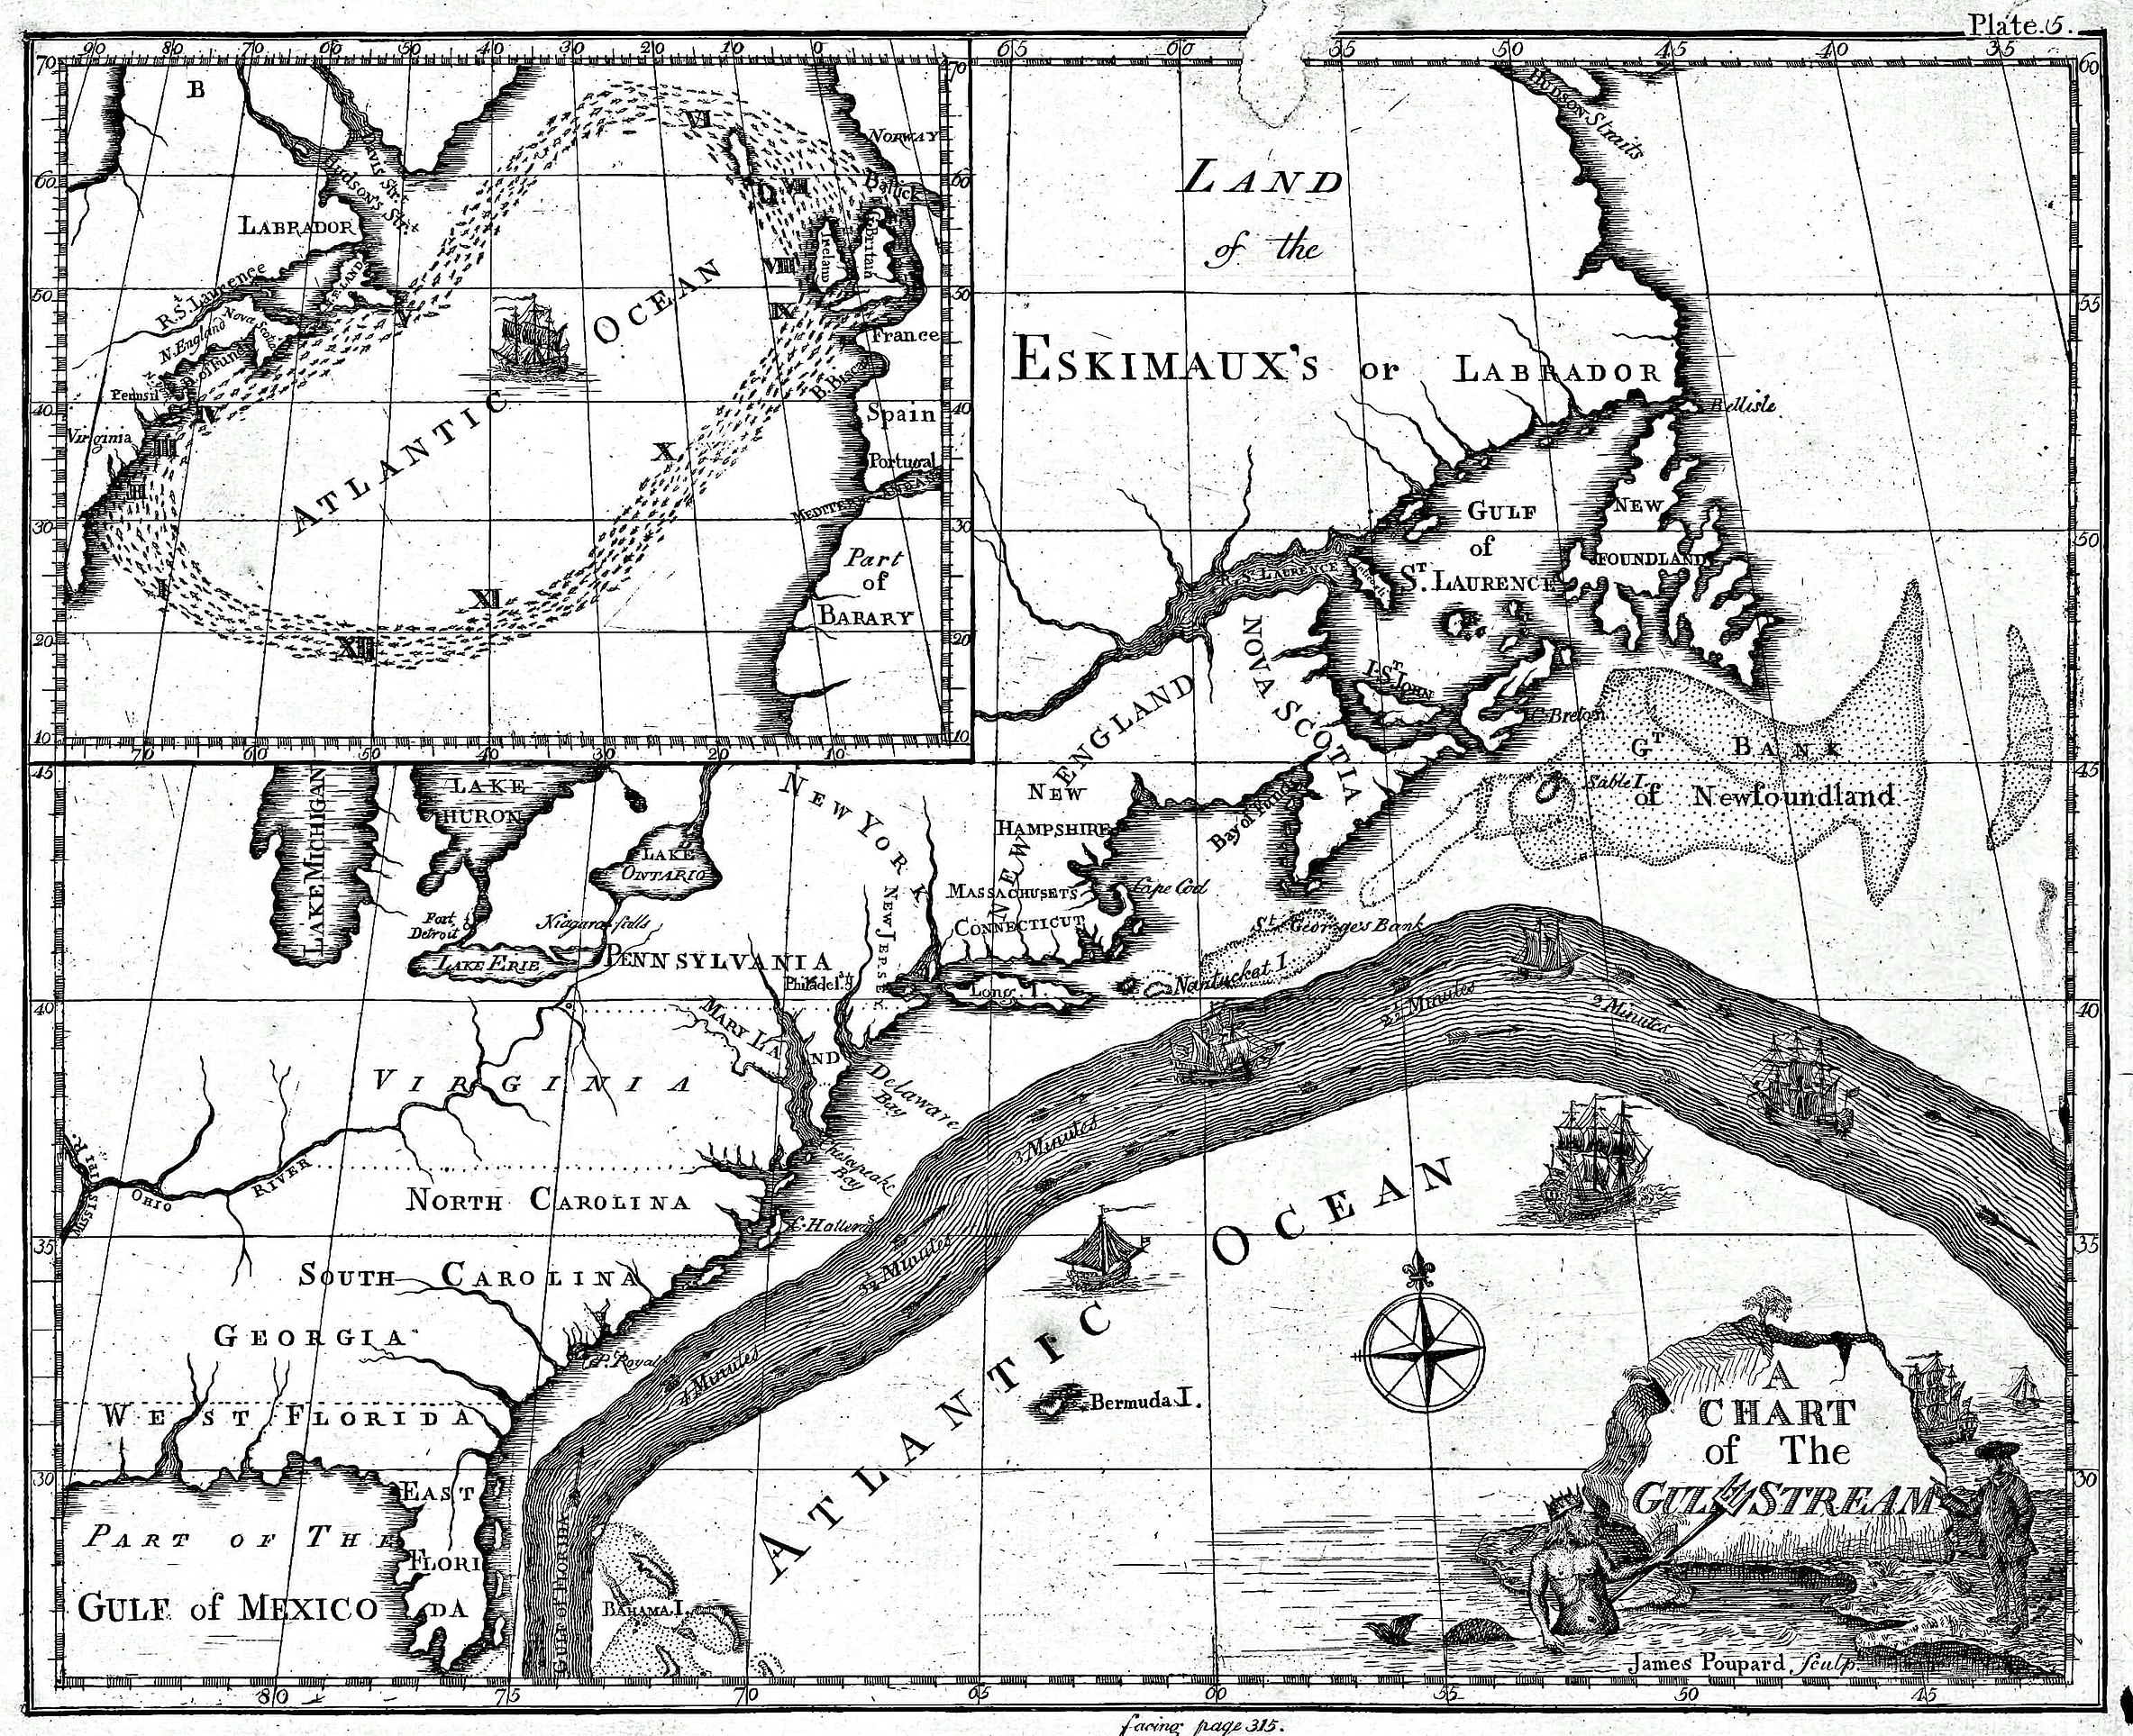 Benjamin Franklin's map of the Gulf Stream